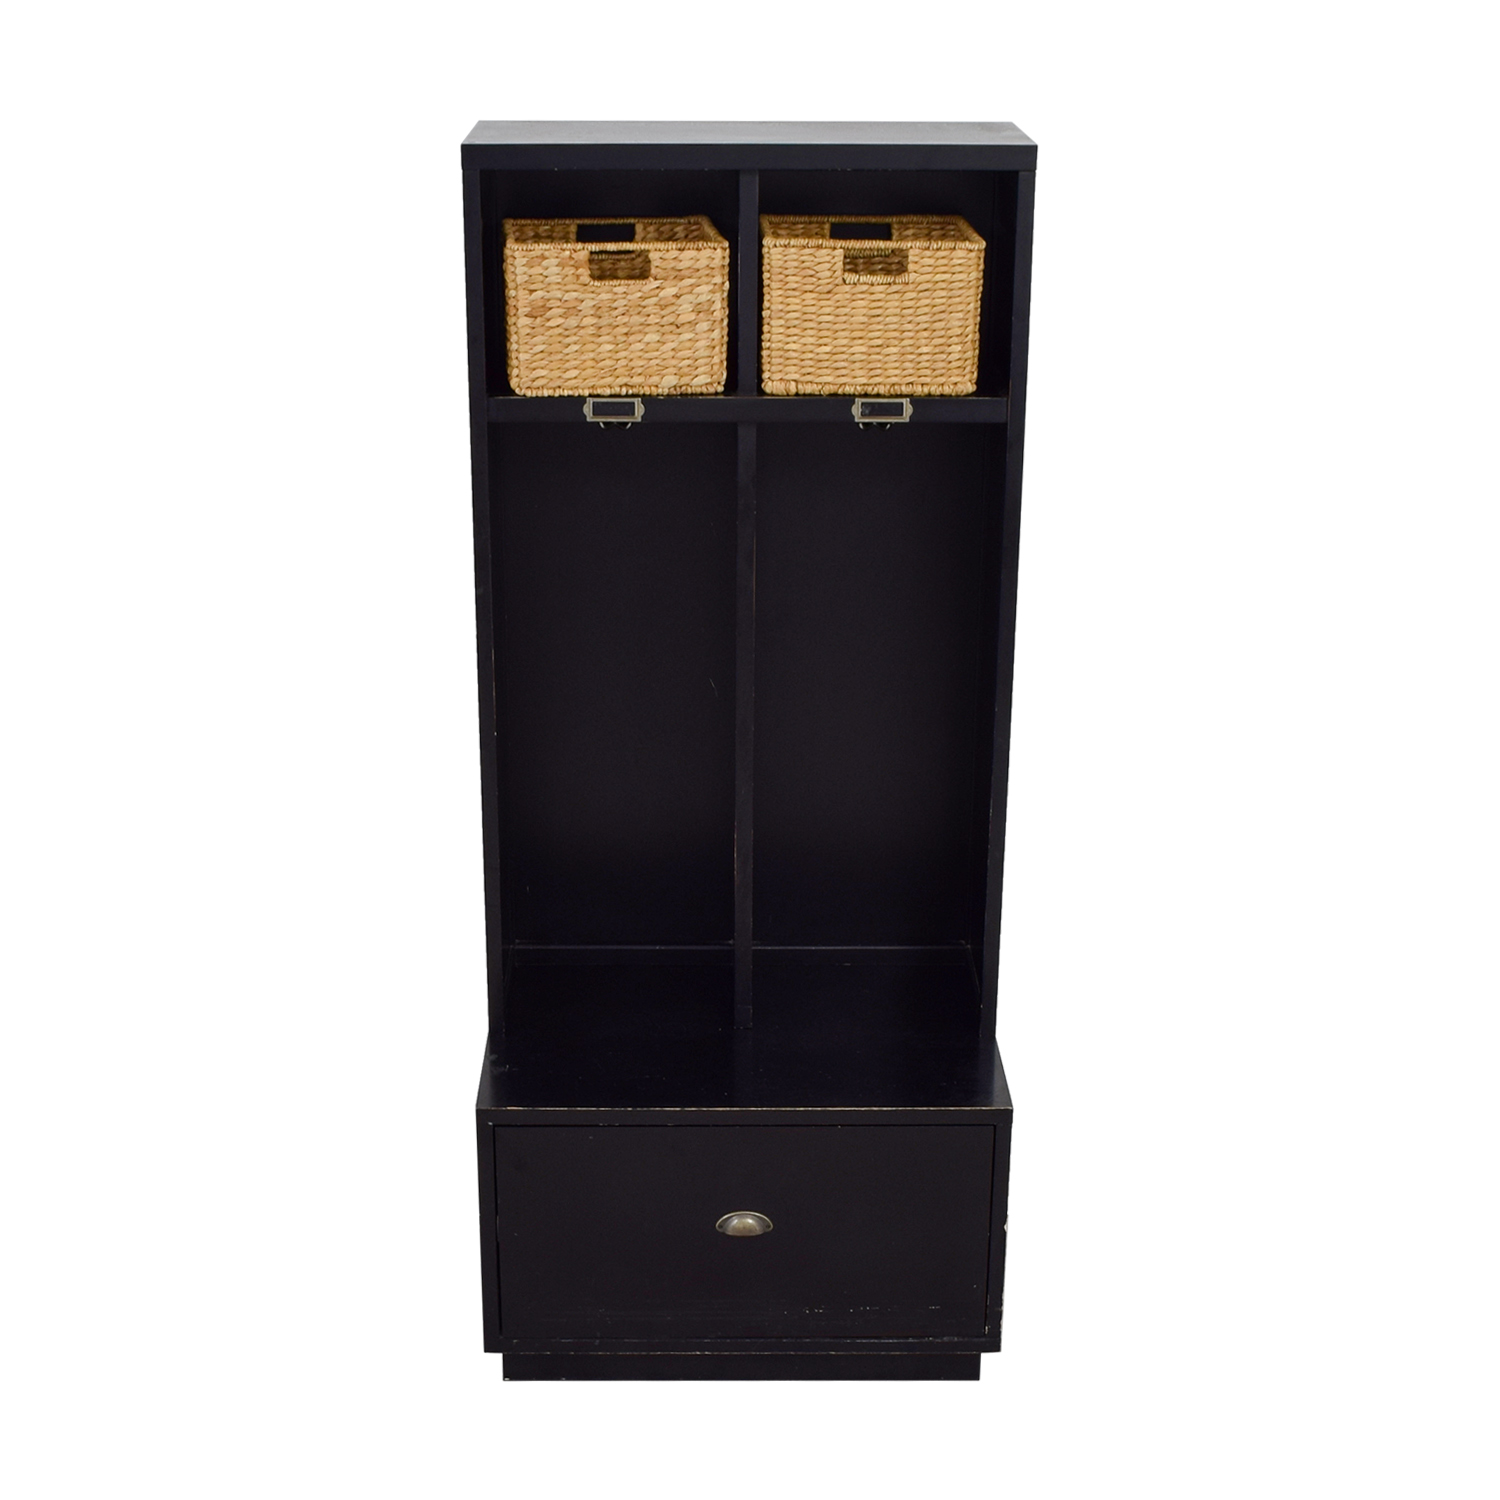 ... Pottery Barn Pottery Barn Single Drawer Mud Room Lockers With Wicker  Baskets Discount ...